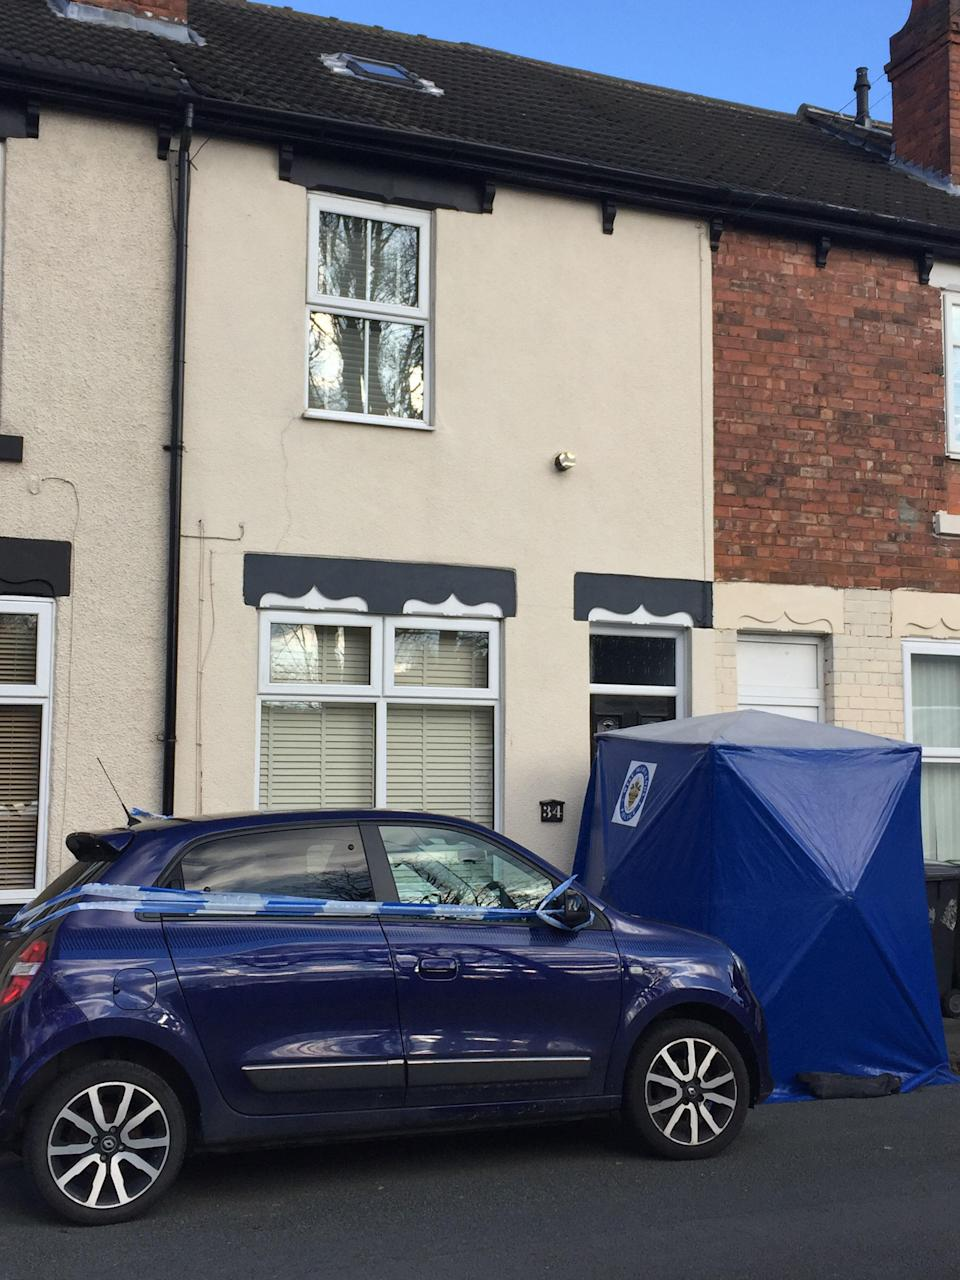 A police corden in place at the scene in James Street, Bilston, Wolverhampton, after a woman's body was found at her home. A 40-year-old man has been arrested on suspicion of murder